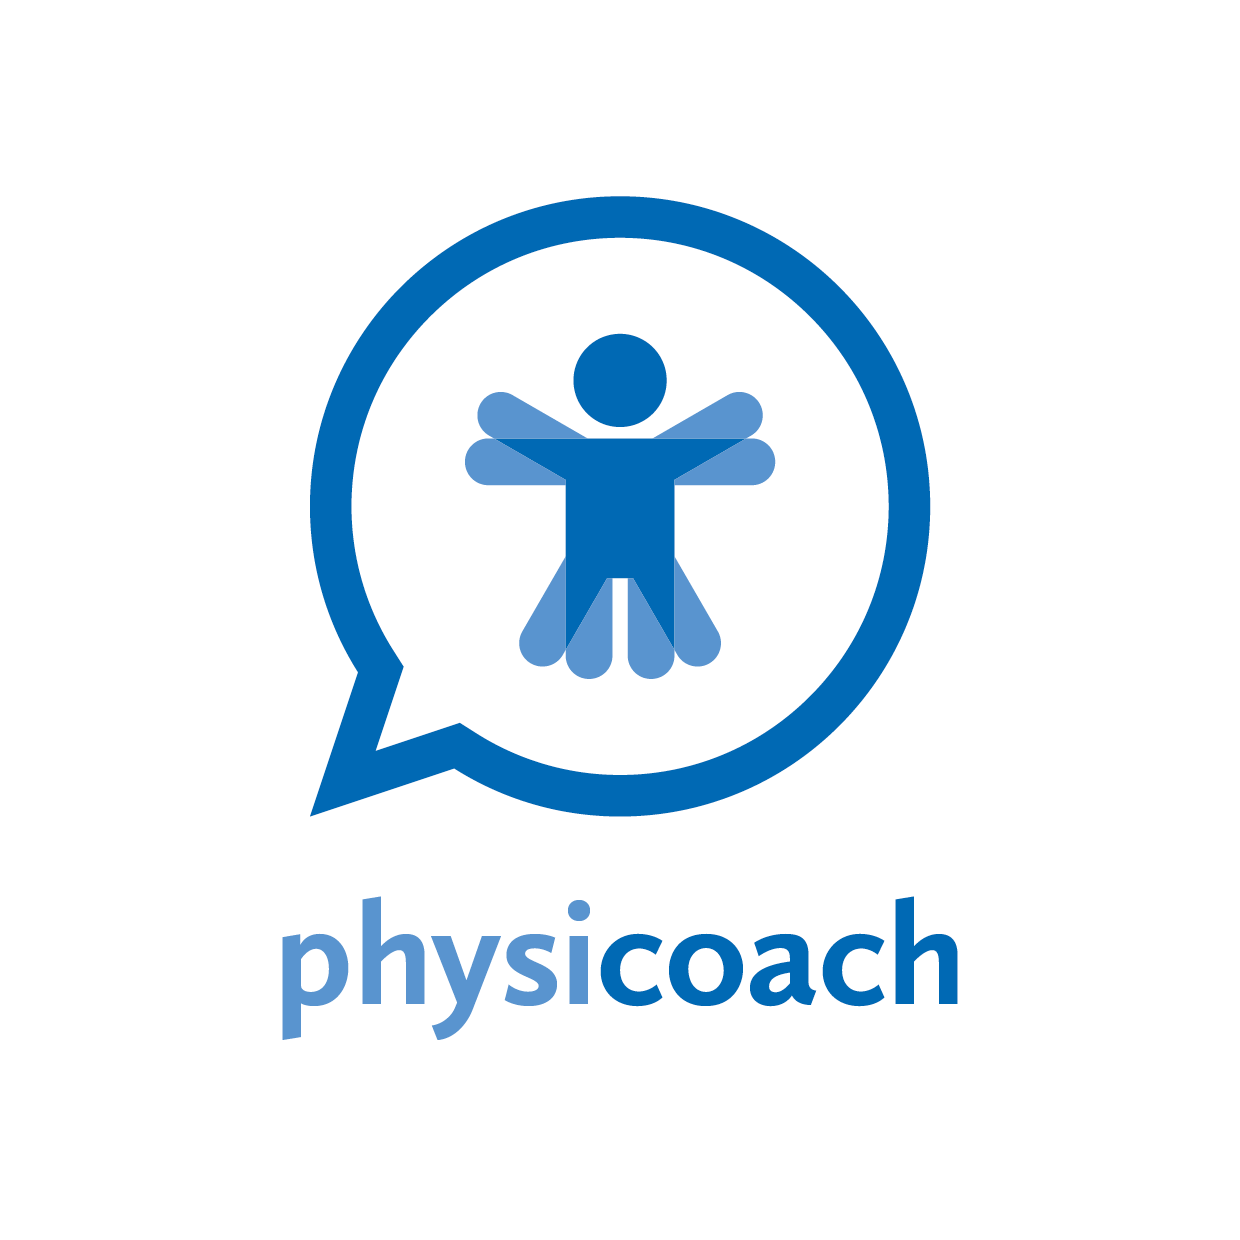 Physicoach